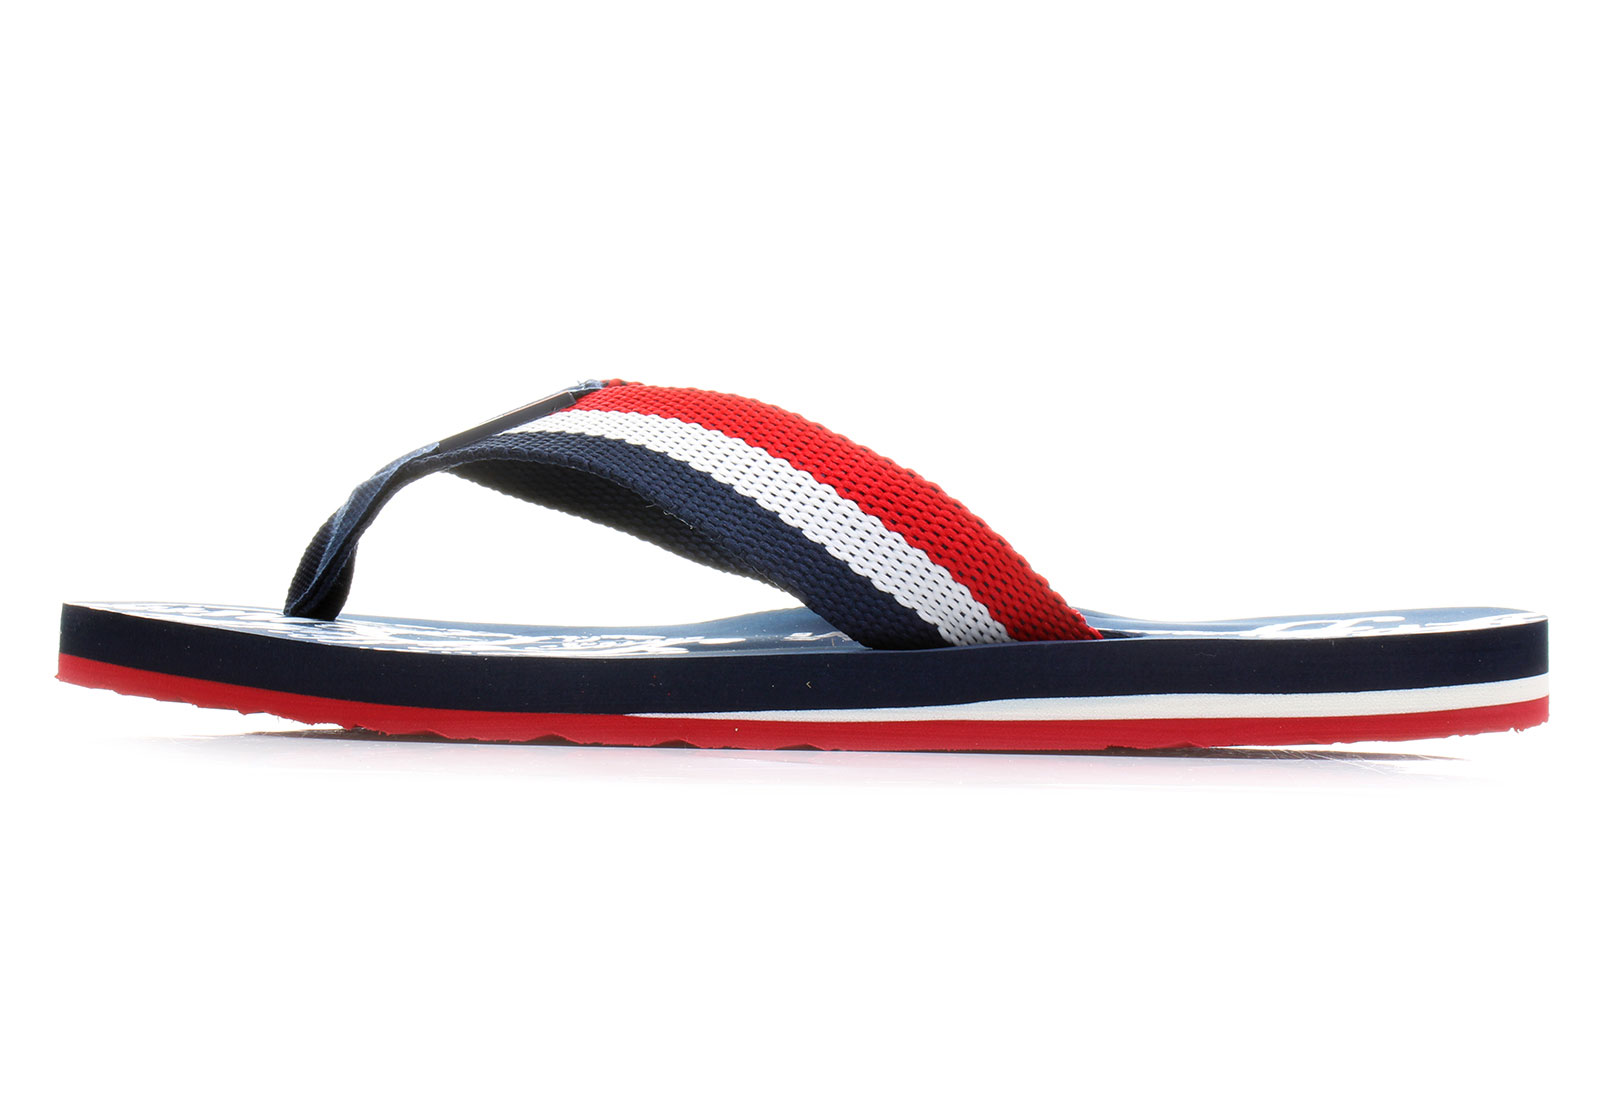 tommy hilfiger slippers beach 4d 16s 0698 284 online. Black Bedroom Furniture Sets. Home Design Ideas